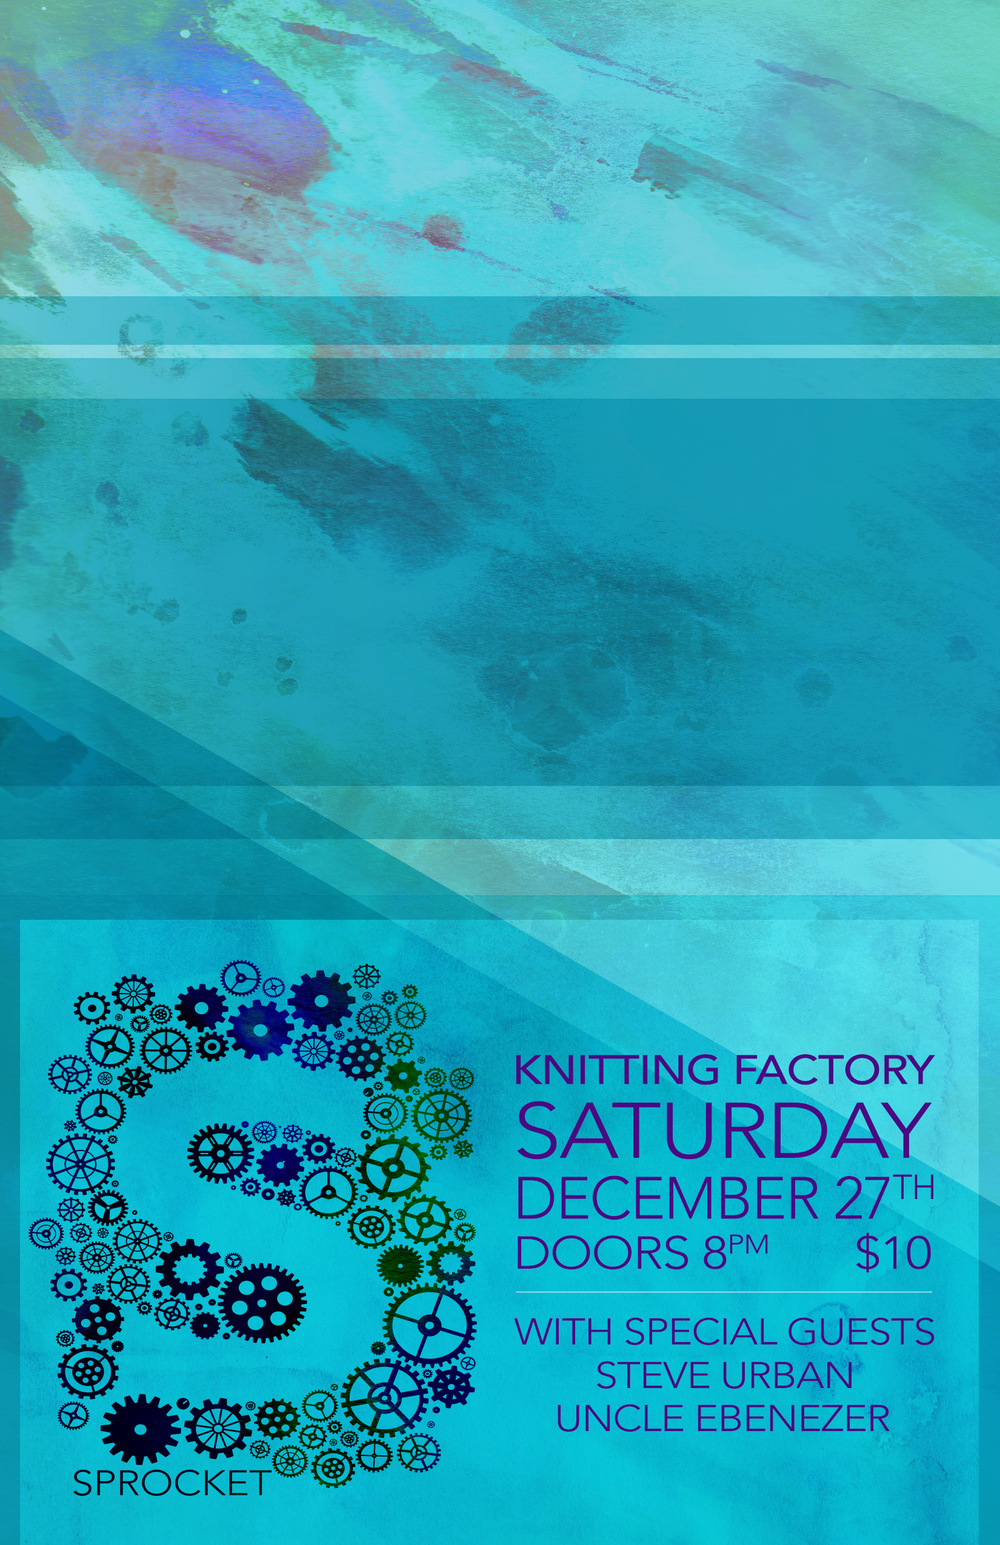 SPROCKET_KNIT_FACTORY_POSTER.jpg